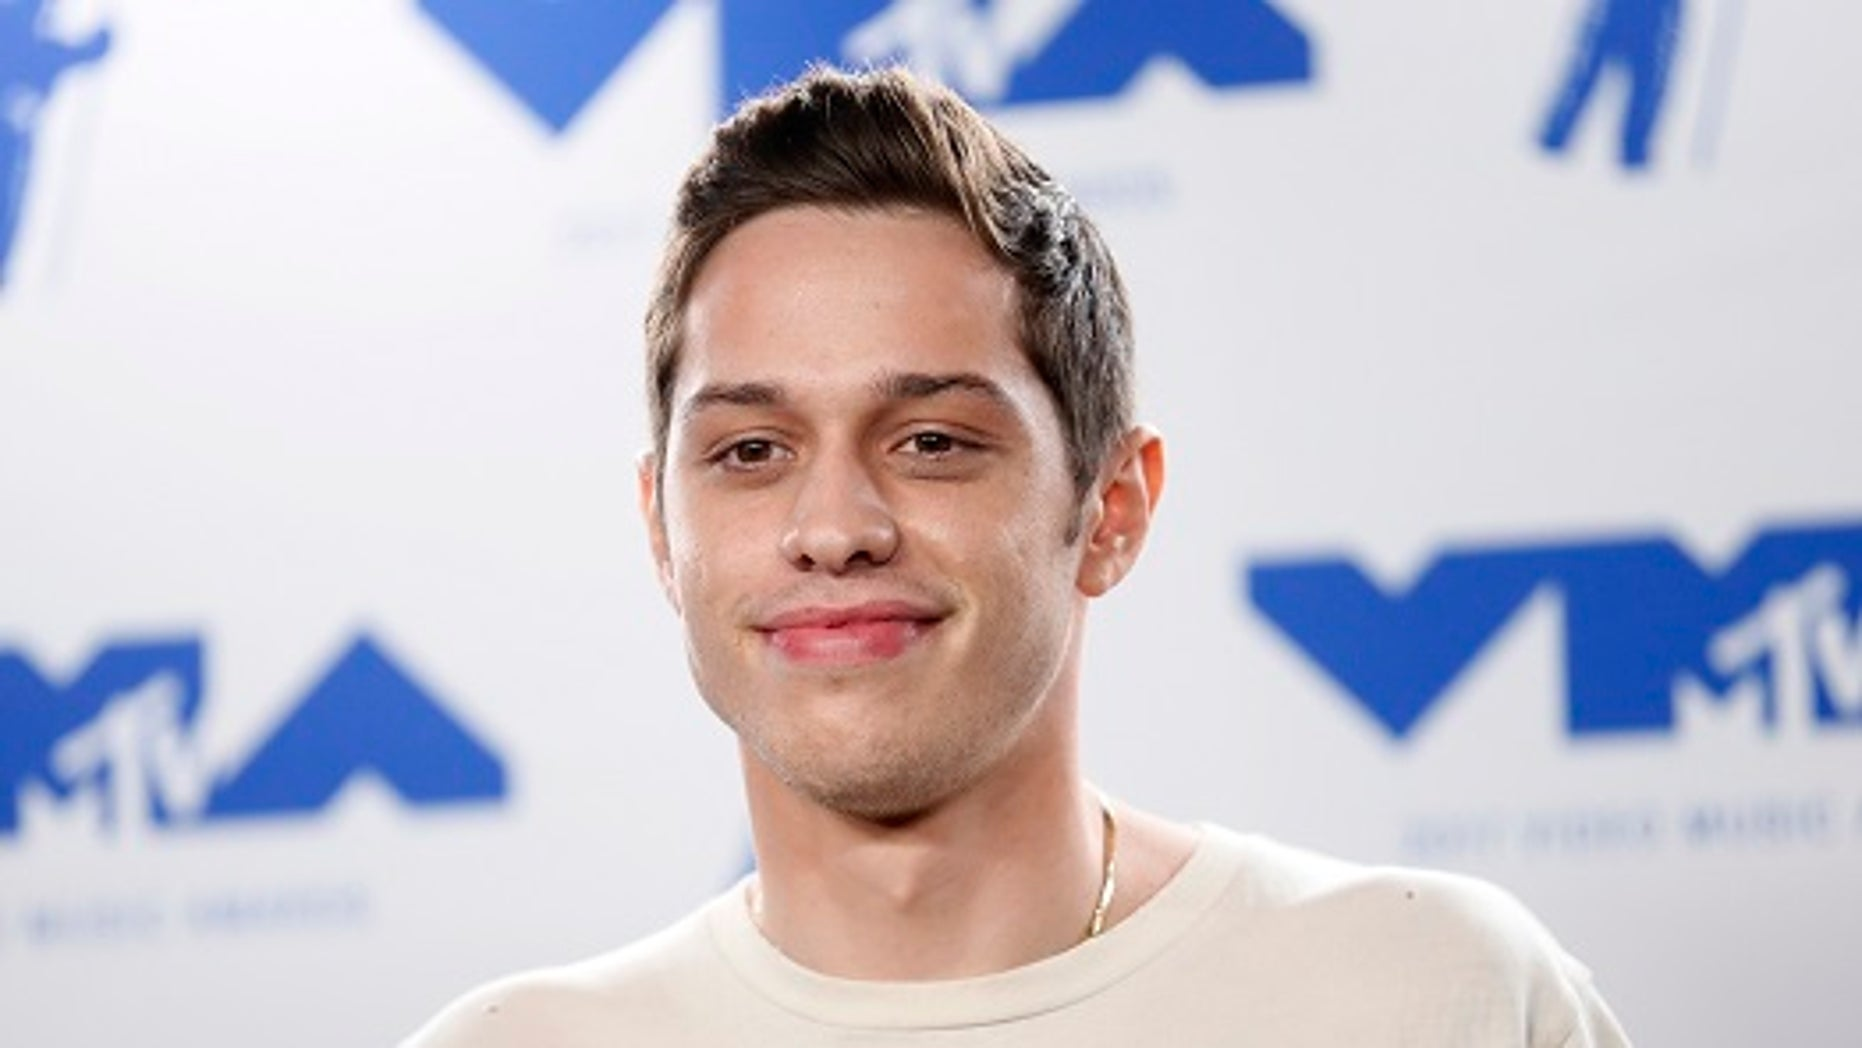 """Saturday Night Live"" star Pete Davidson revealed Monday that he has been diagnosed with borderline personality disorder."